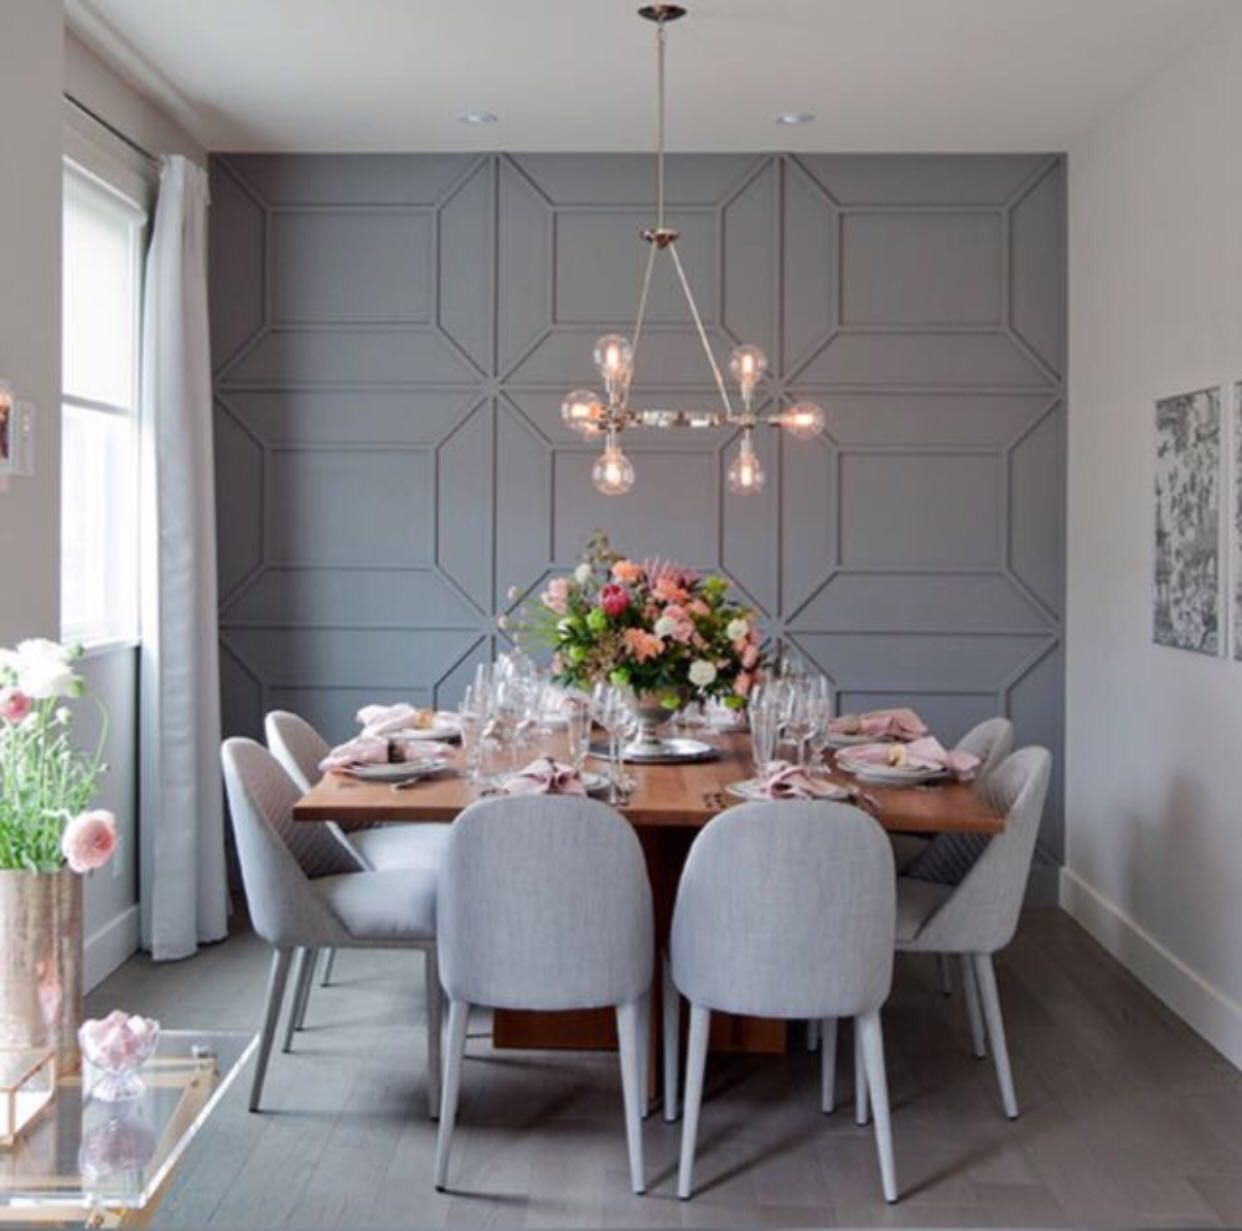 32 Stylish Dining Room Ideas To Impress Your Dinner Guests